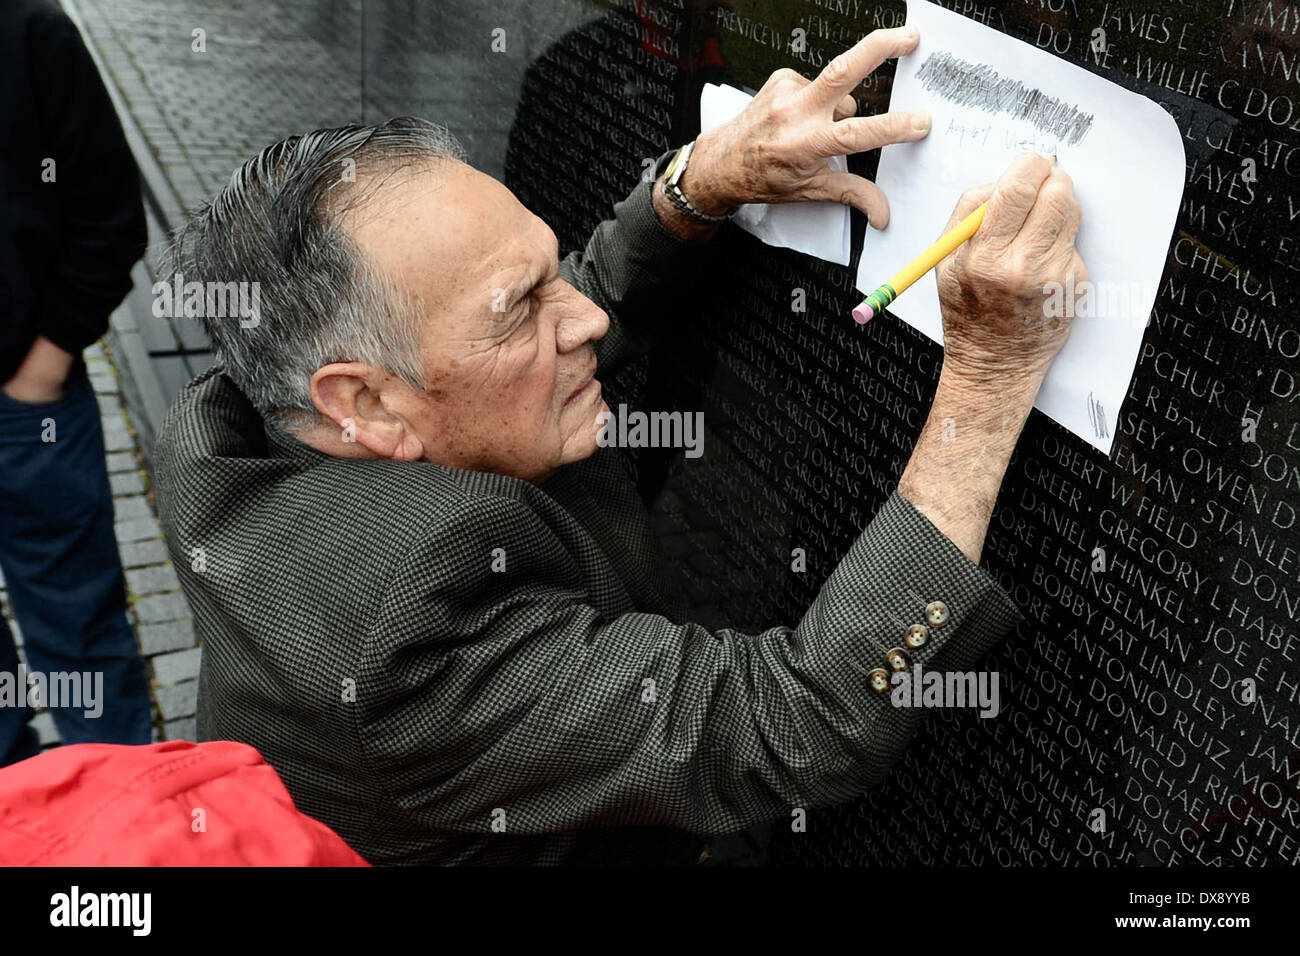 Washington DC, USA . 19th Mar, 2014. Medal of Honor recipient Army Master Sgt. Jose Rodela stencils a friend's name from the Vietnam Veterans Memorial March 19, 2014 in Washington, D.C. Credit:  Planetpix/Alamy Live News - Stock Image